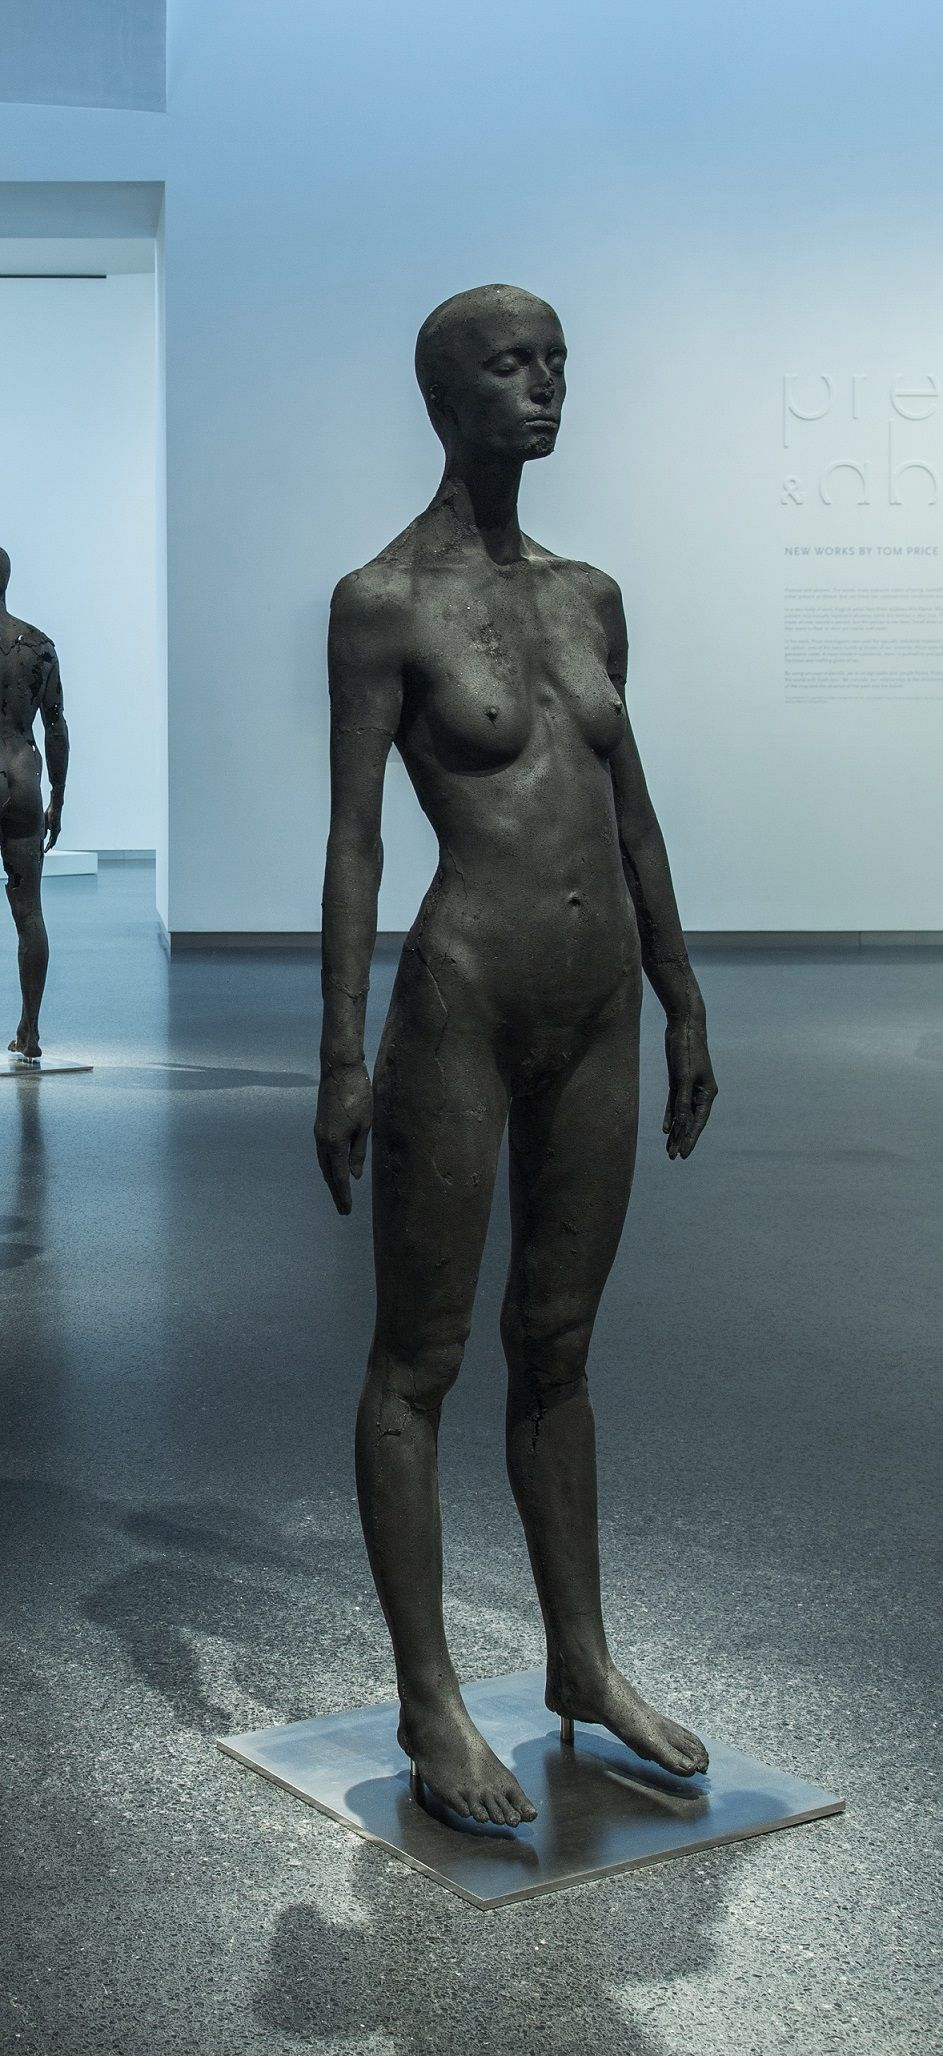 Sculpture - Tom Price - The Presence of Absence - Female (I)